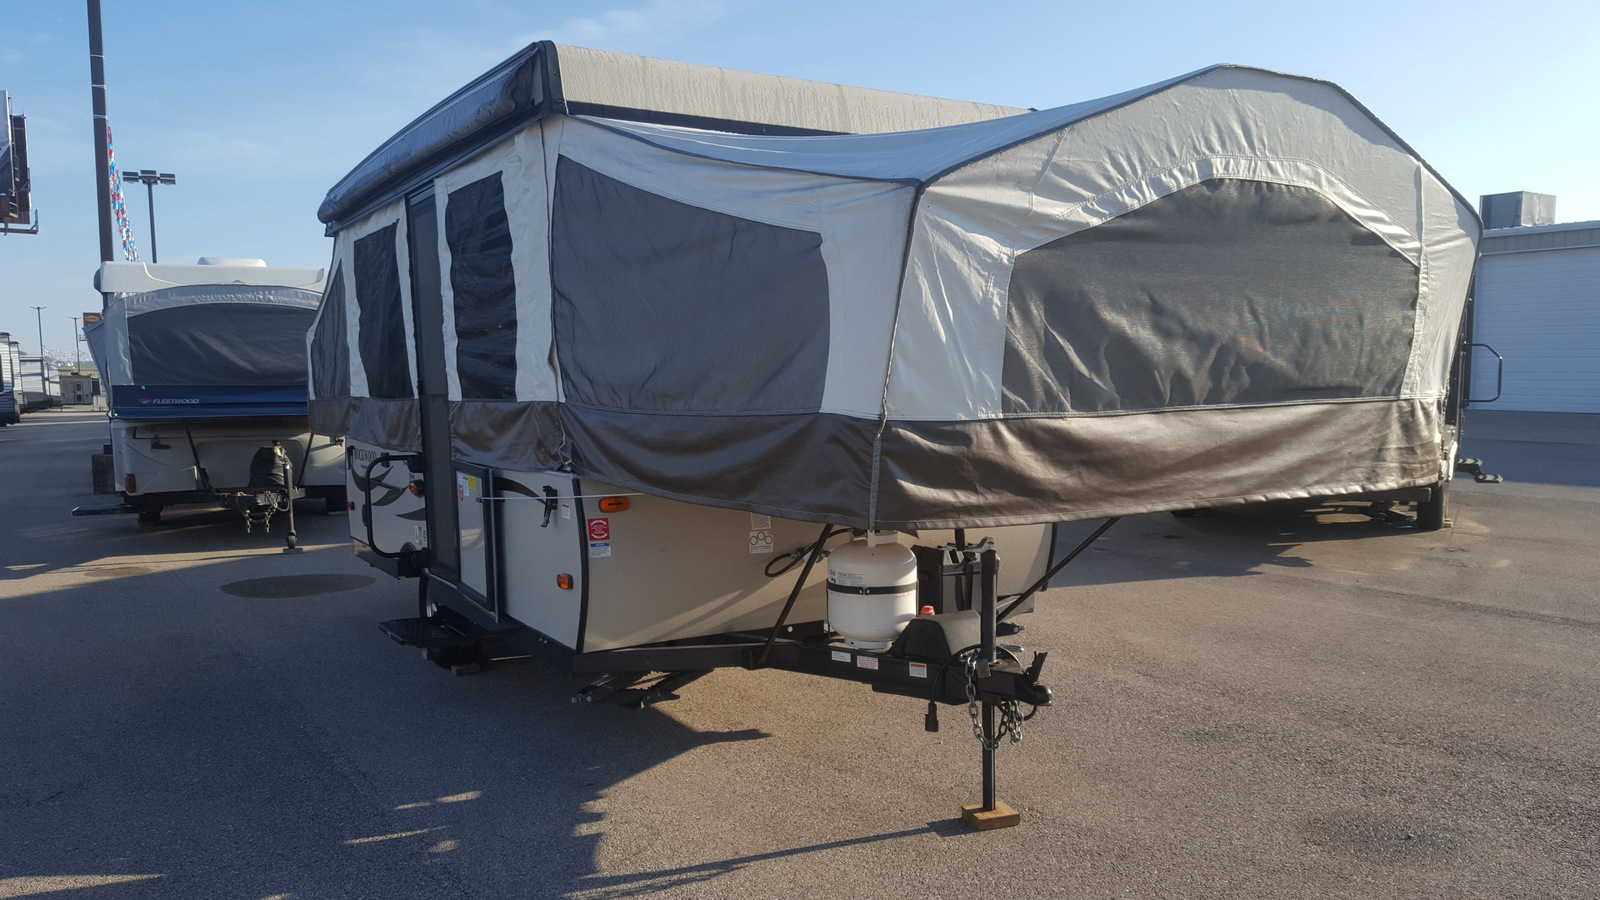 USED 2016 Forest River ROCKWOOD 2270 - American RV